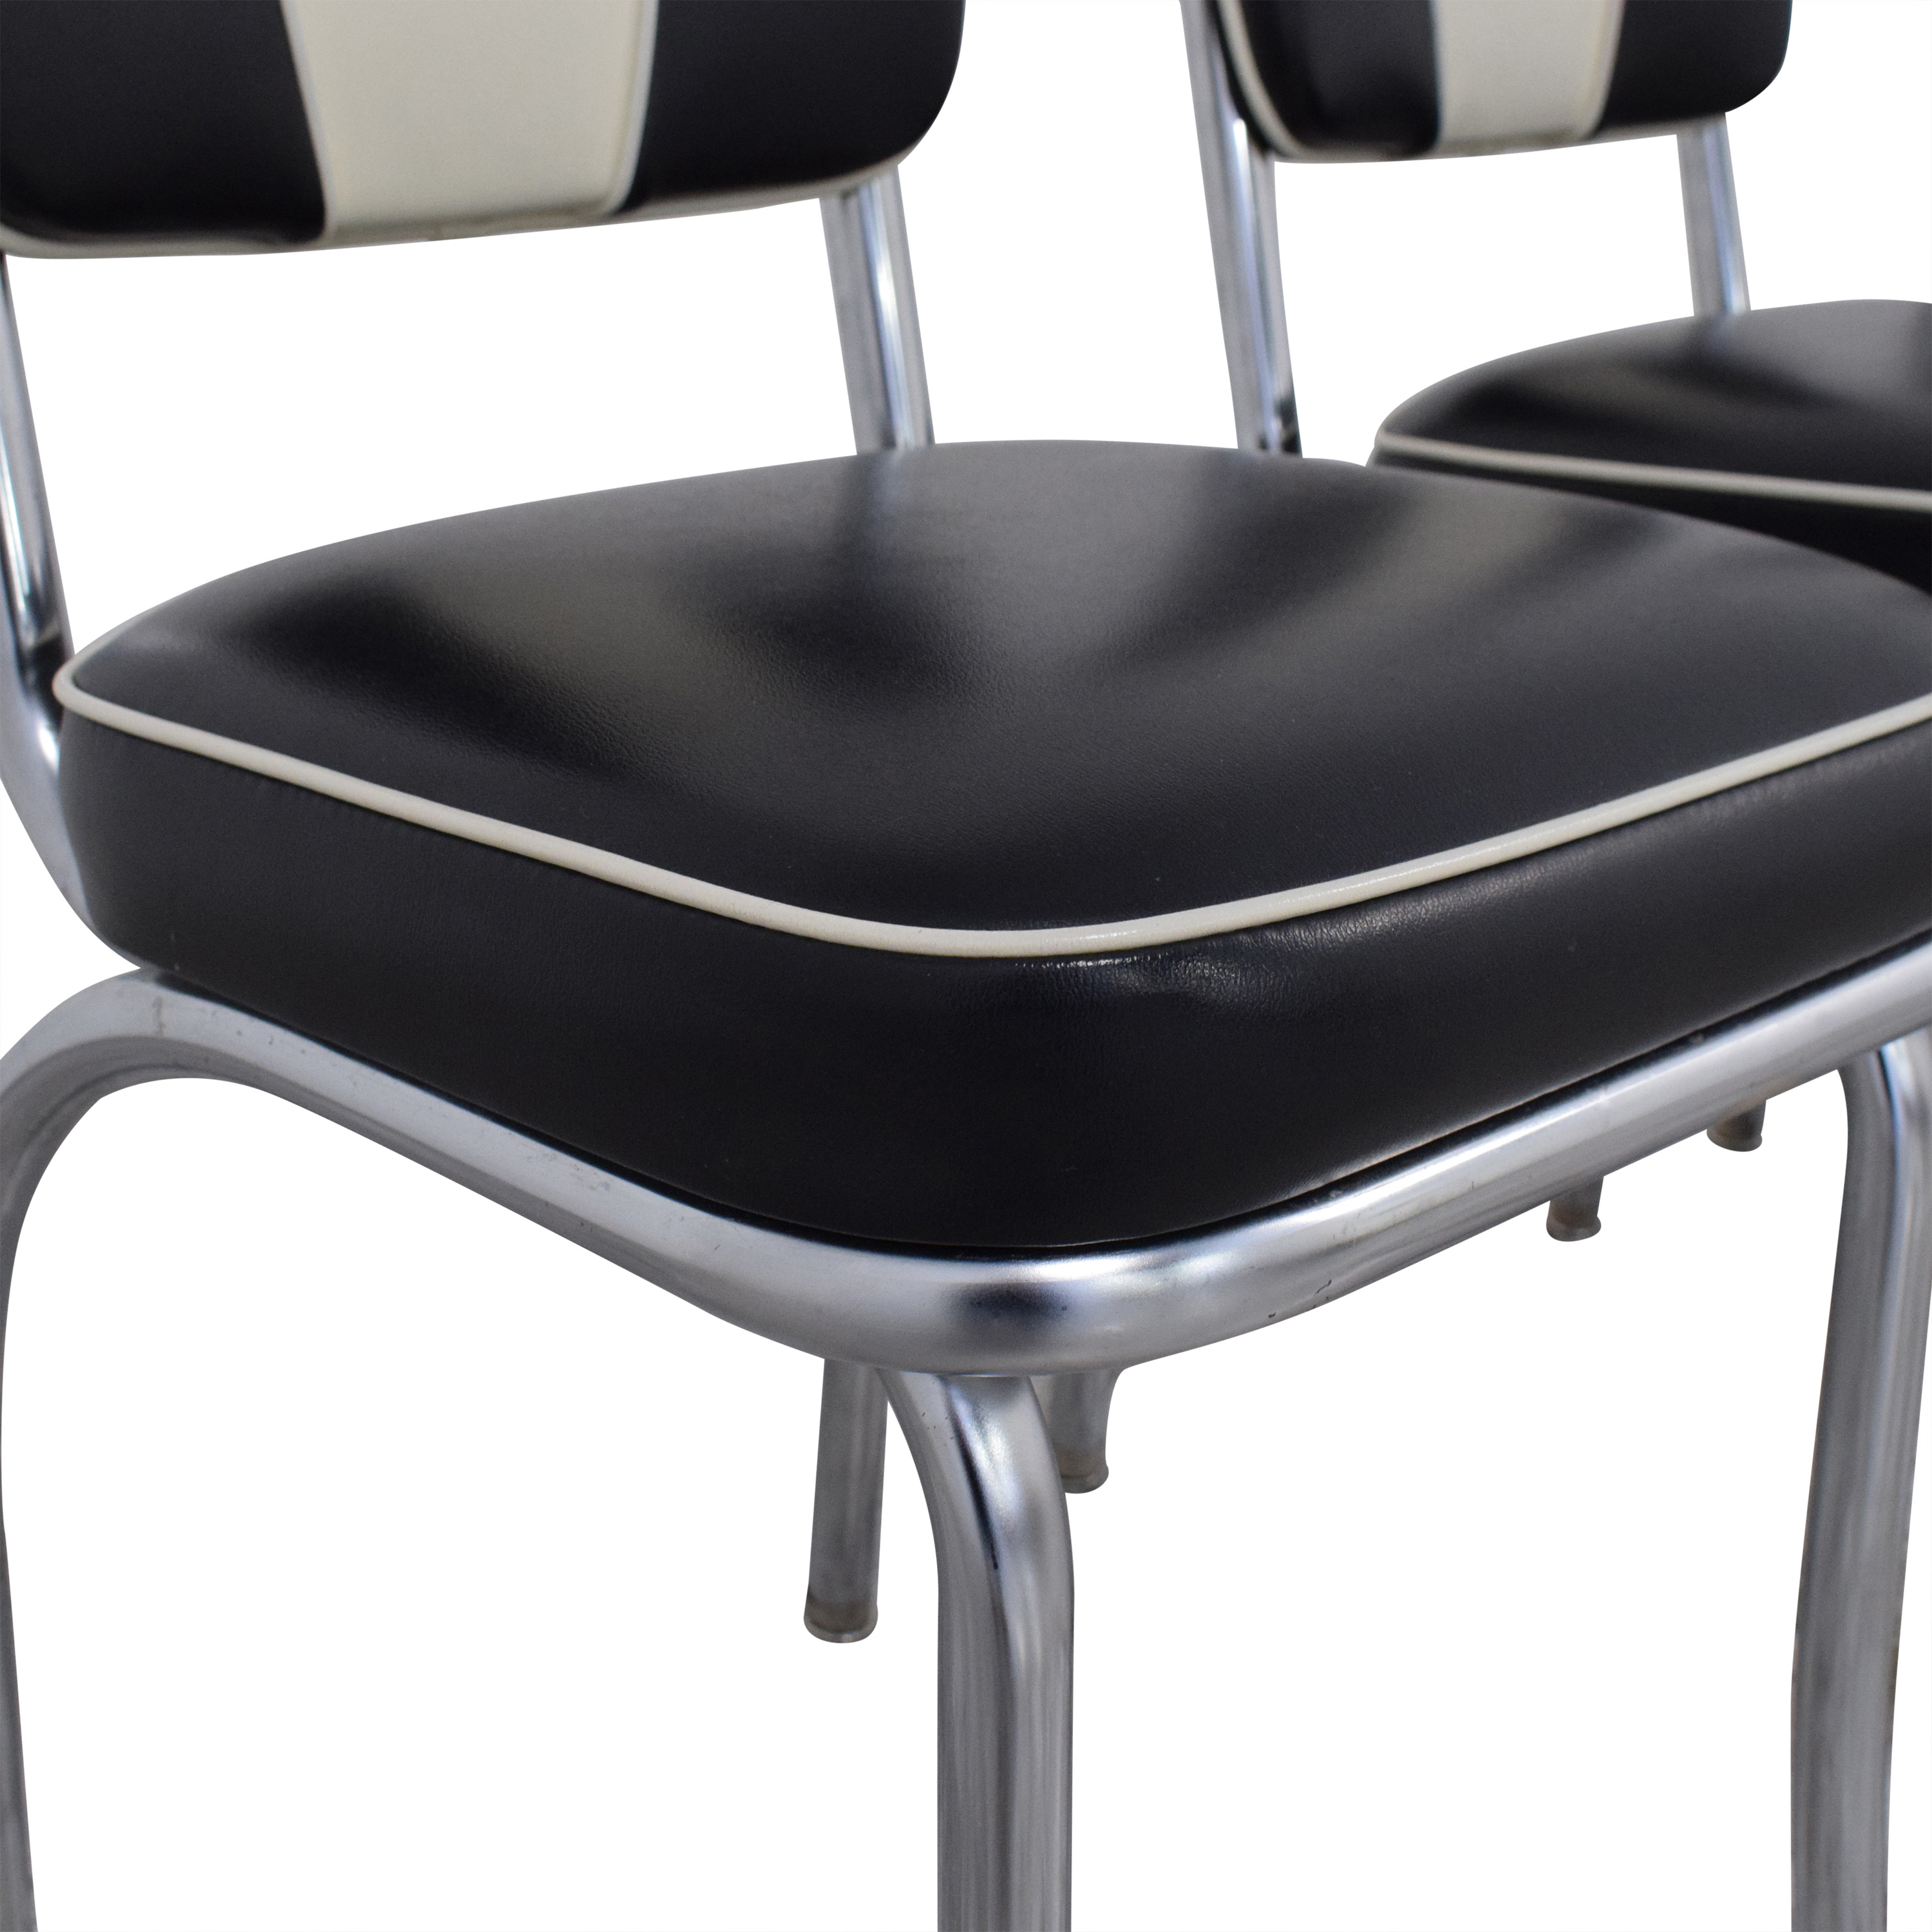 Richardson Seating Corp Richardson Seating Classic Diner Chair on sale